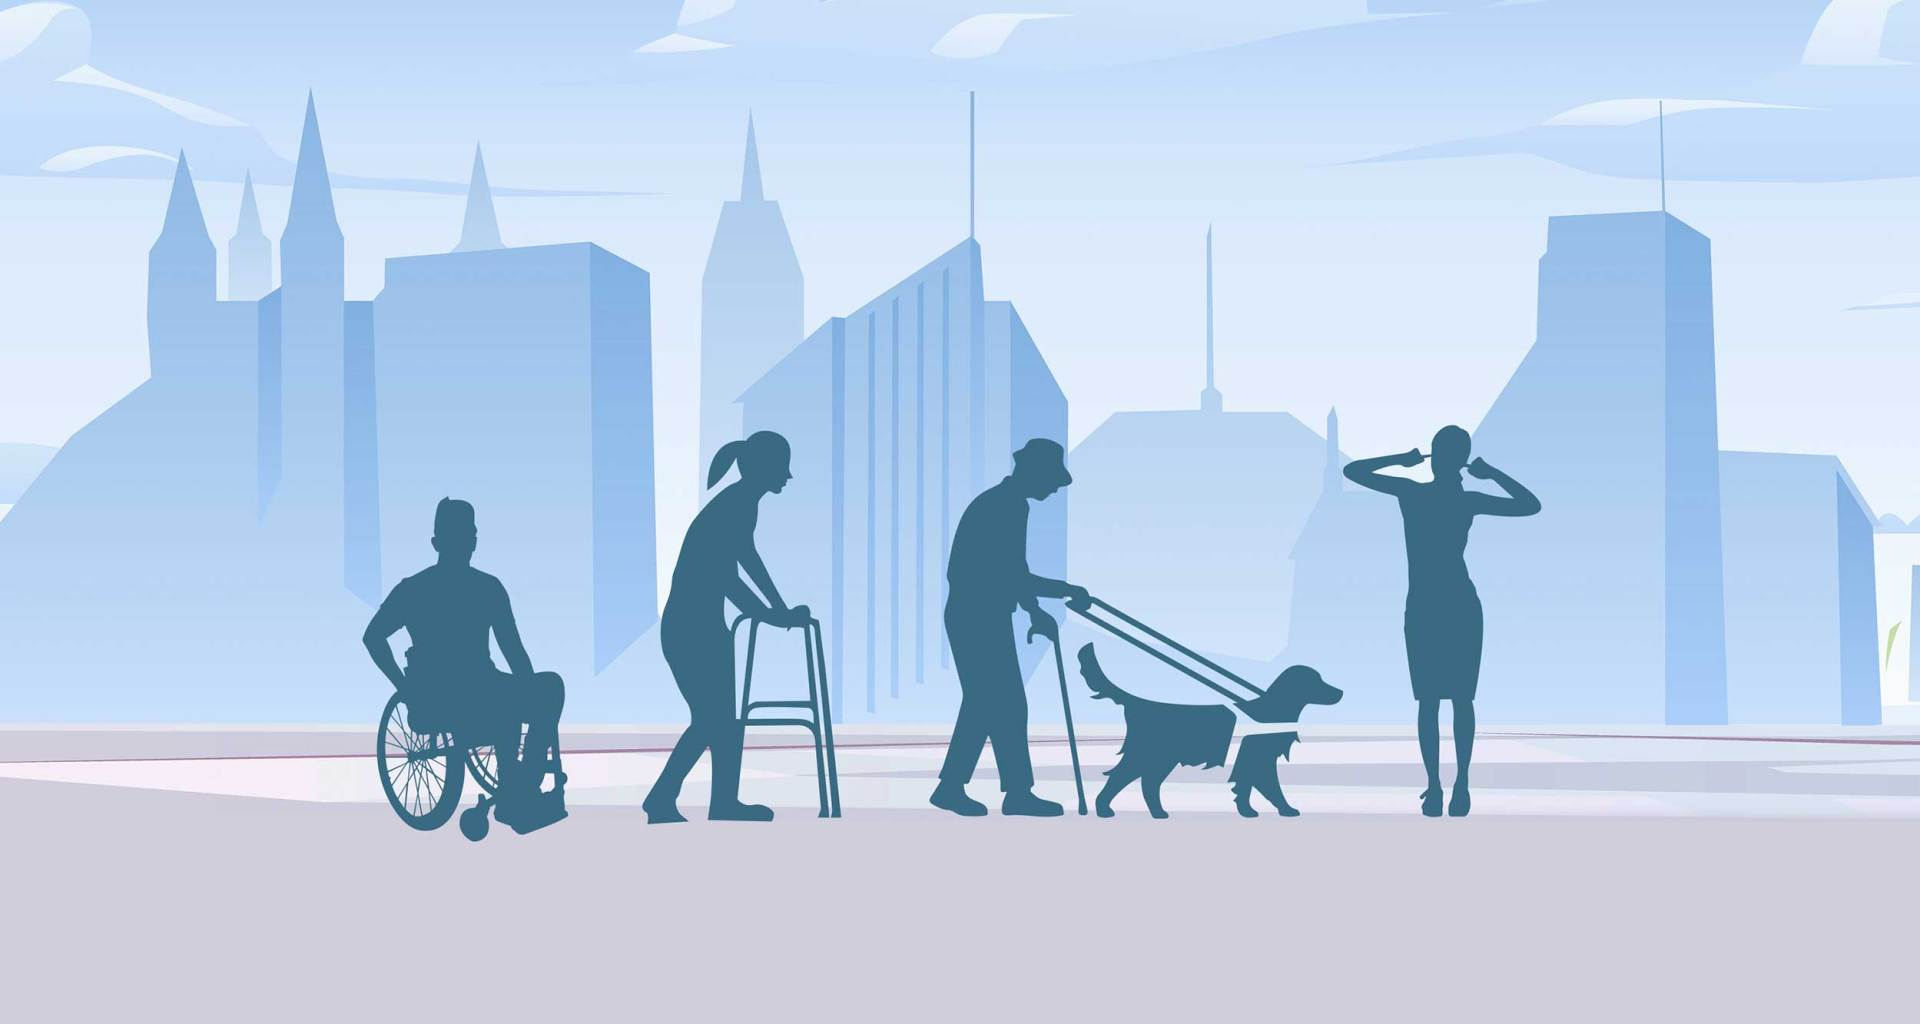 Illustration of disabled people - man in wheelchair, woman with walker, man with service dog, deaf woman pointing to her ears, walking in front of a city skyline.